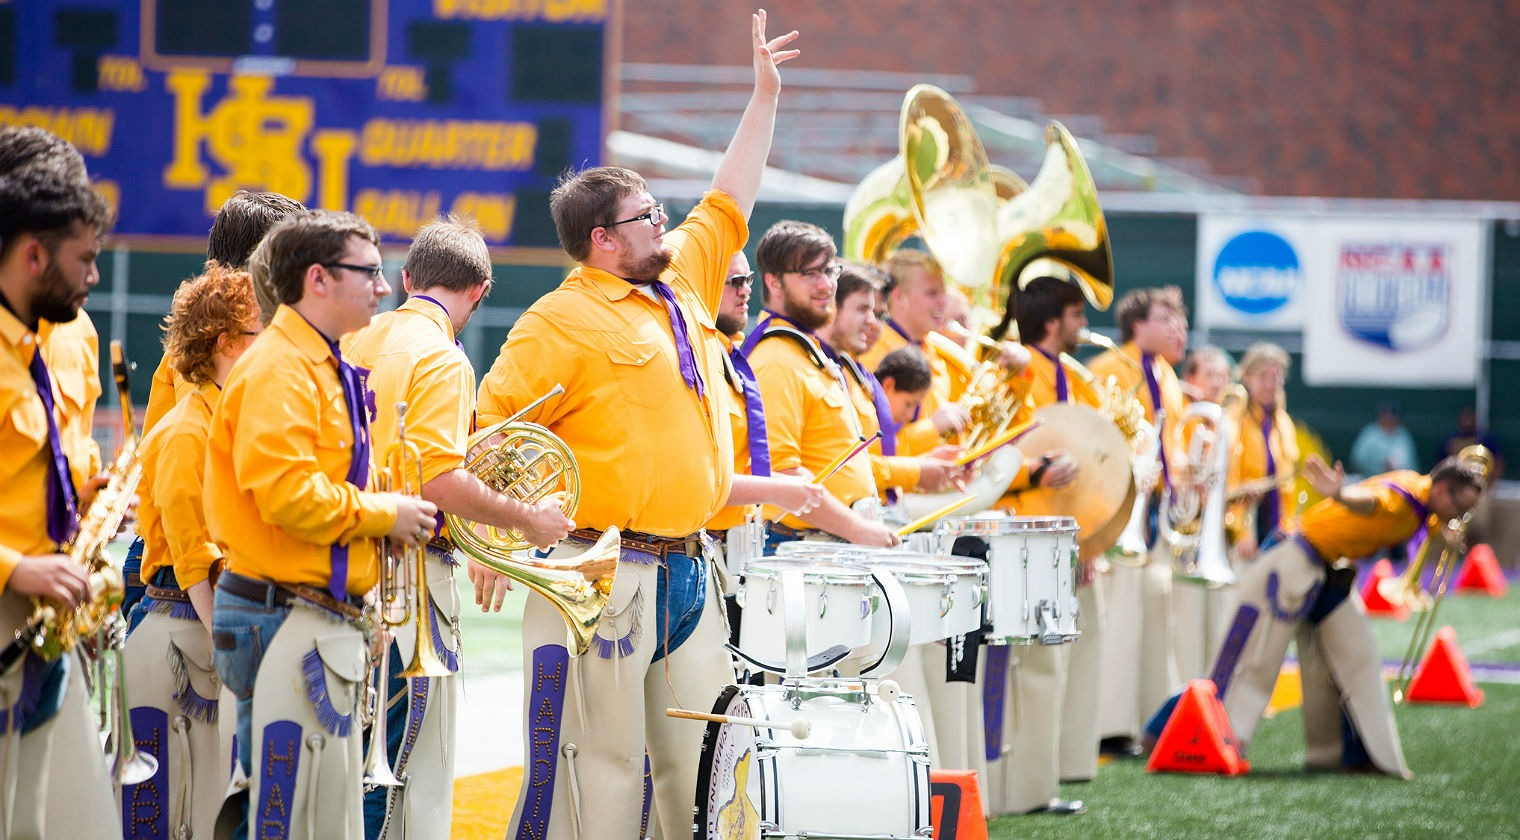 HSU band performing halftime show on football field